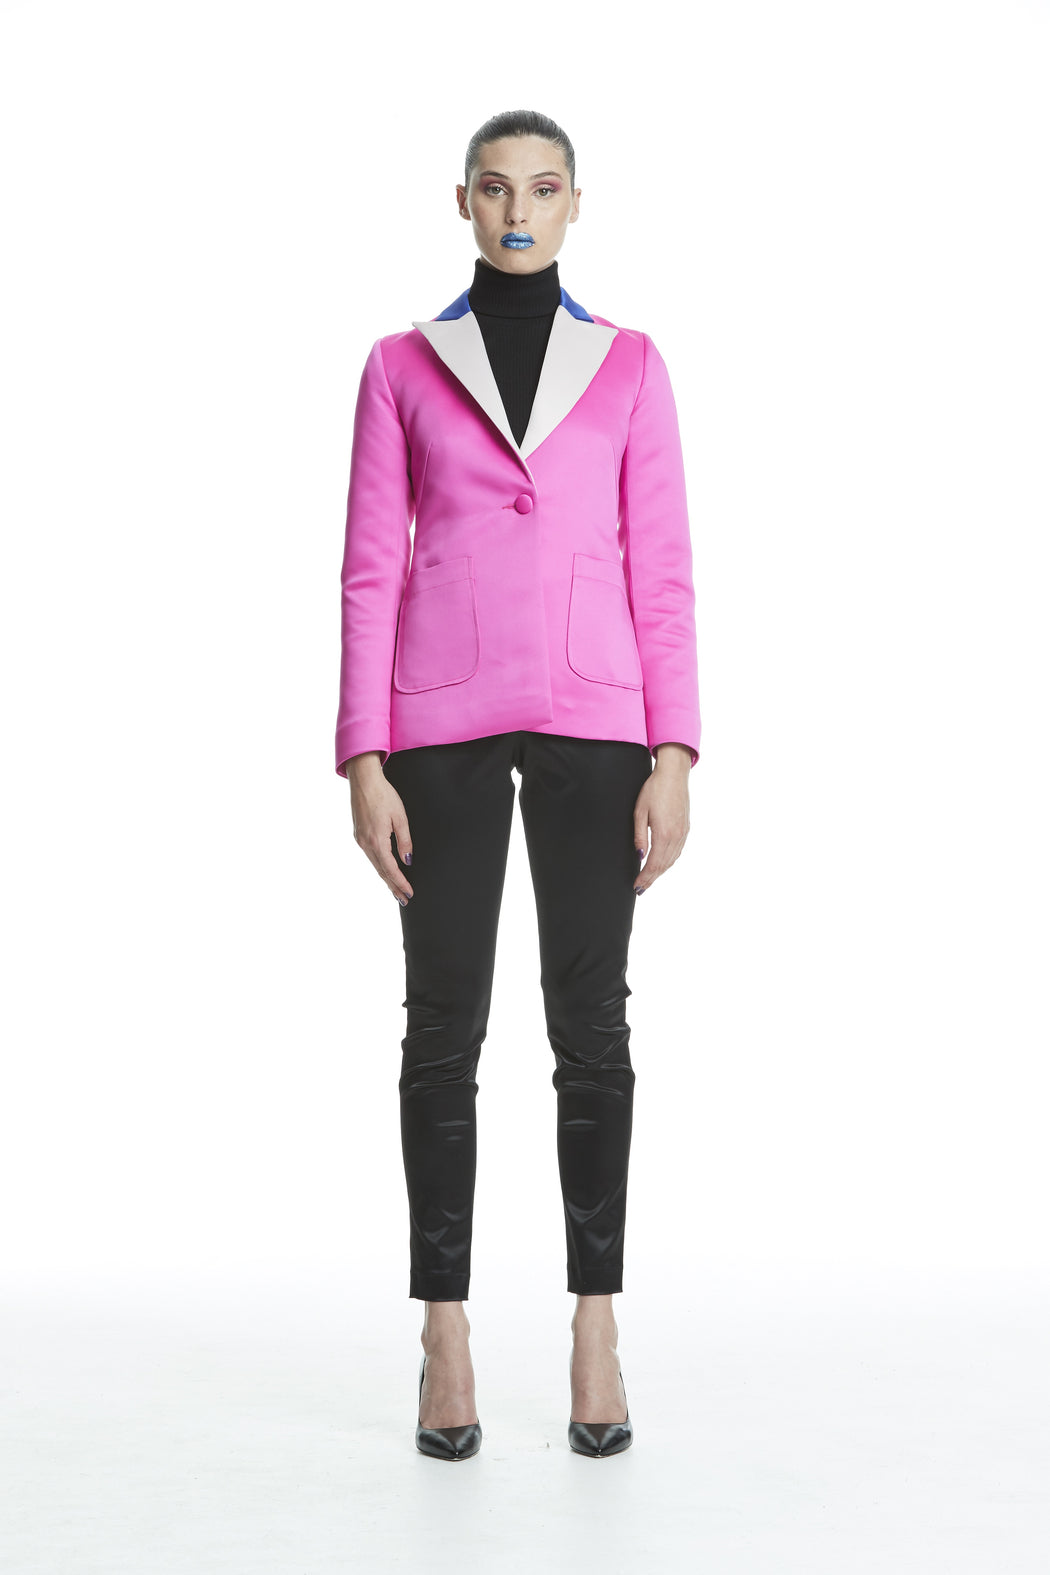 WORLD 4441 The Actor Blazer Pink Royal Oyster